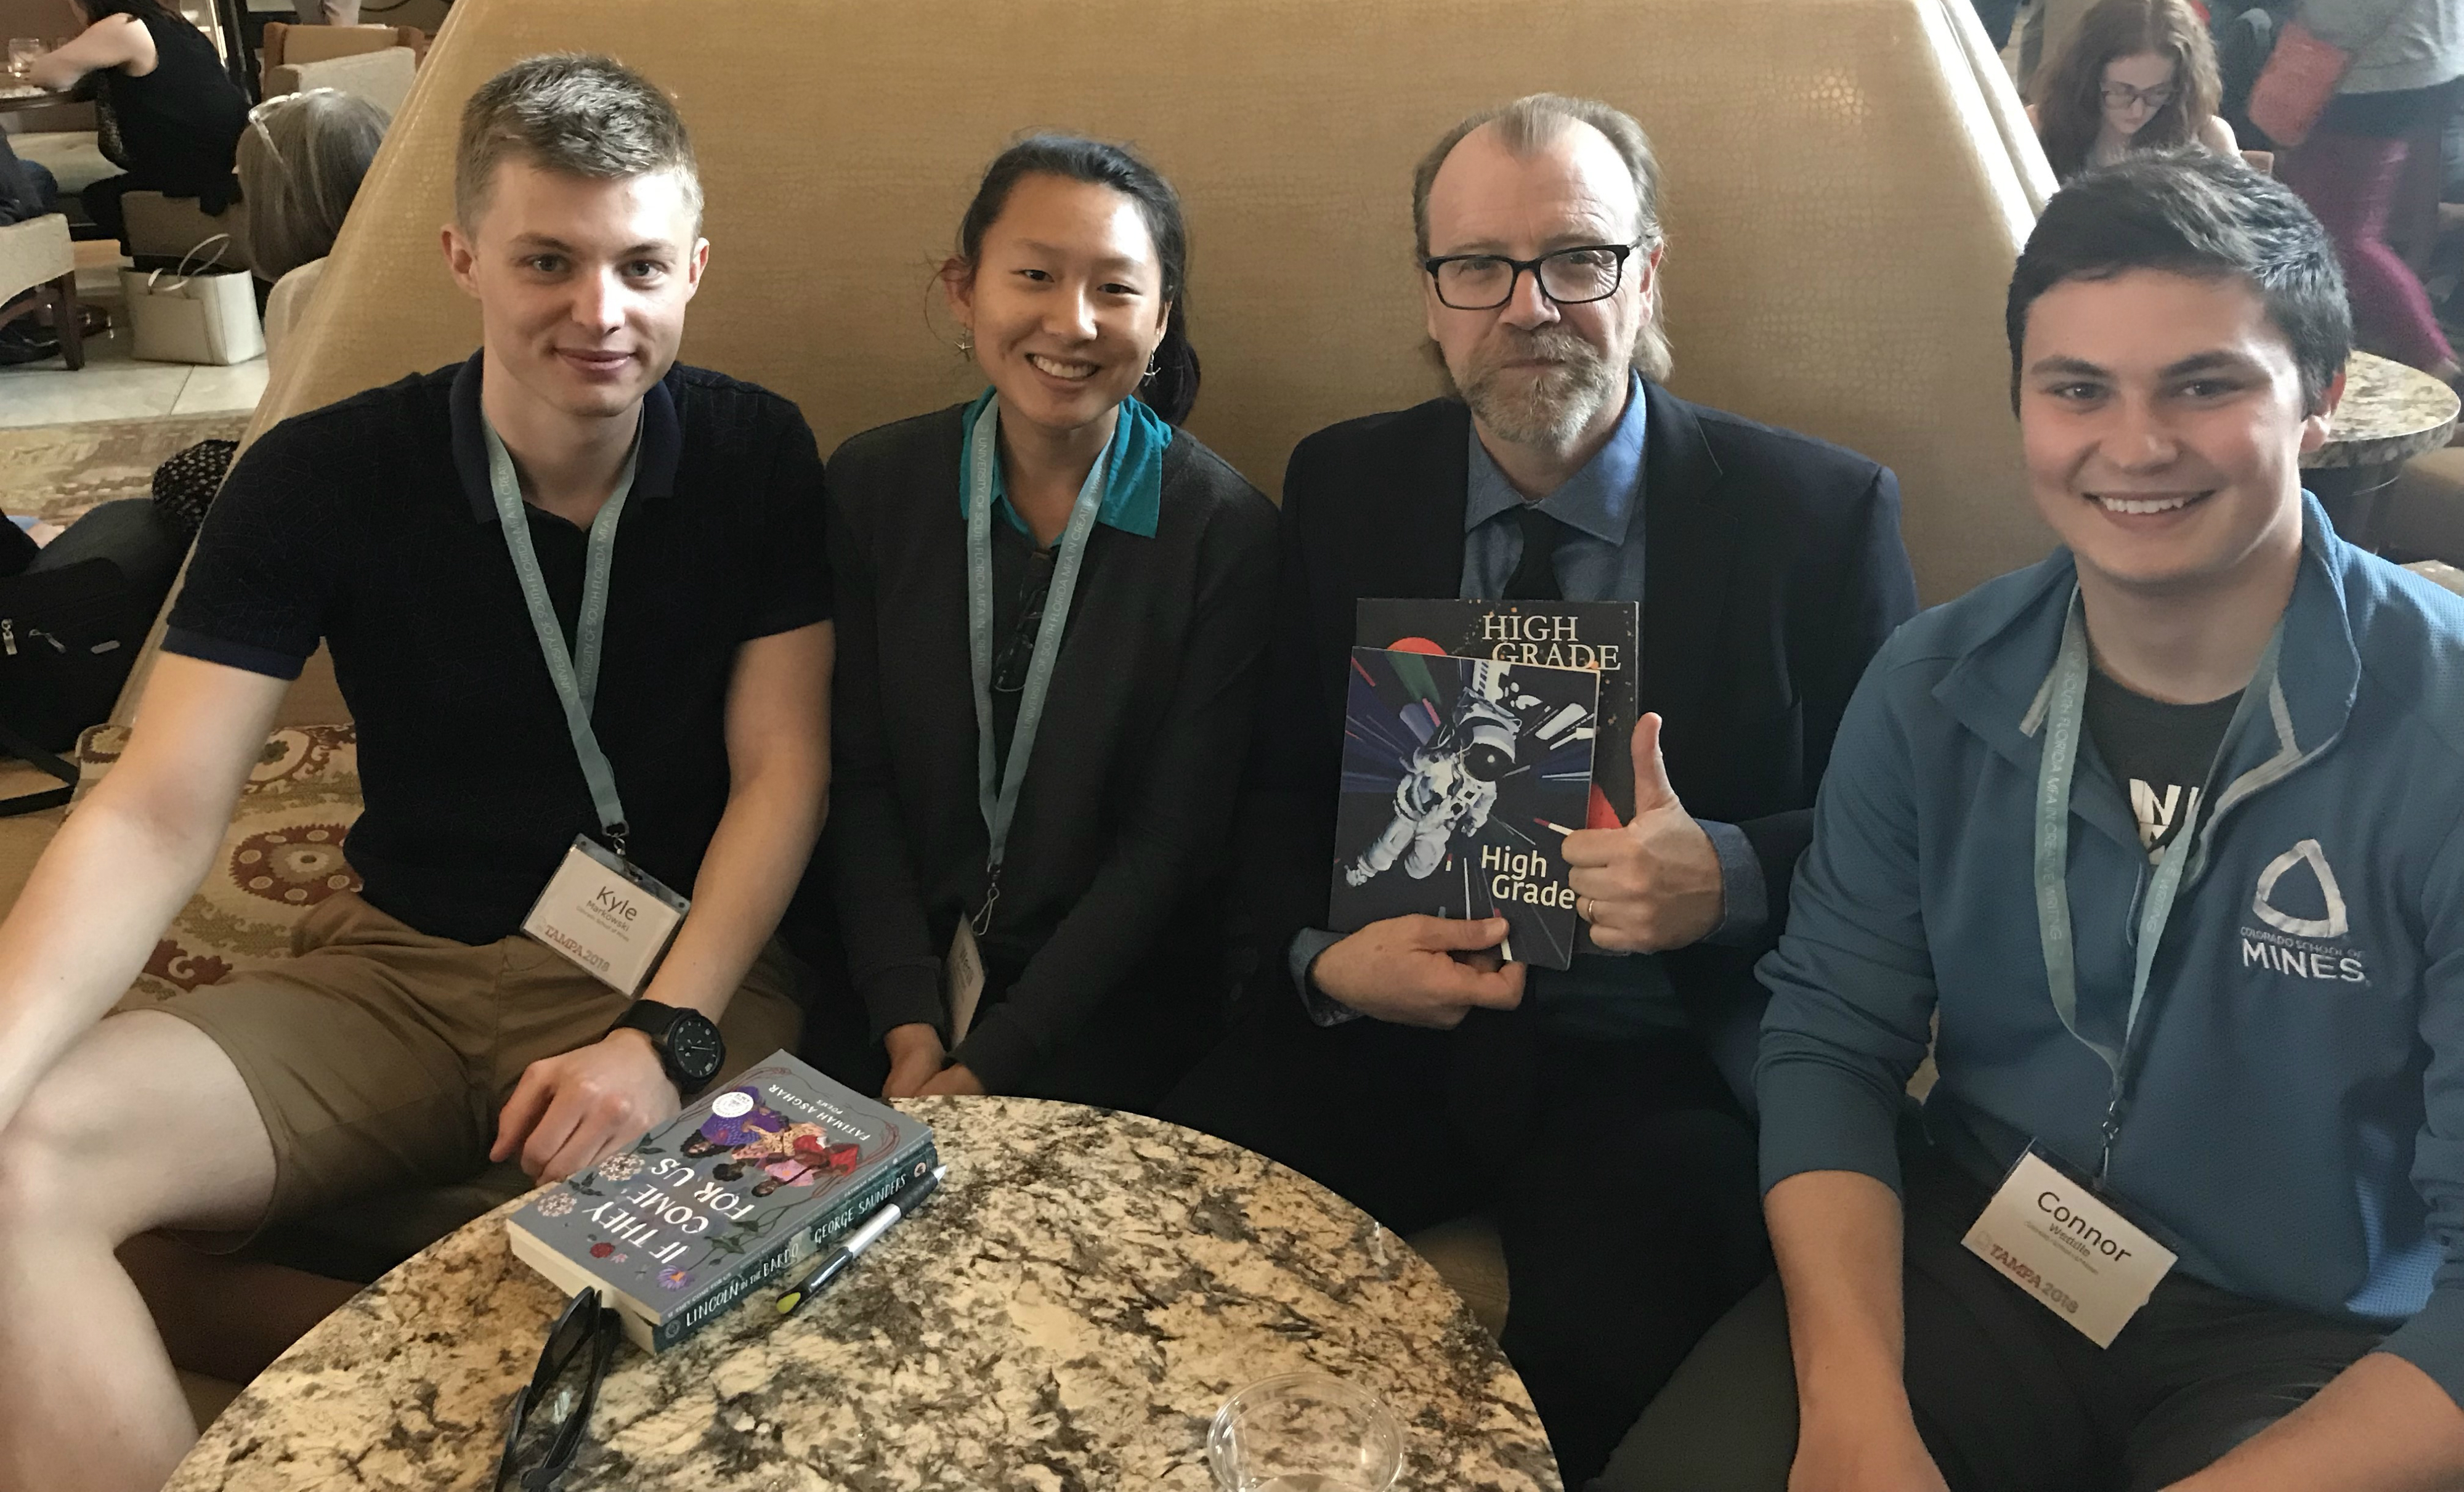 High Grade editors Wenli Dickinson, Kyle Markowski and Connor Weddle meet with George Saunders